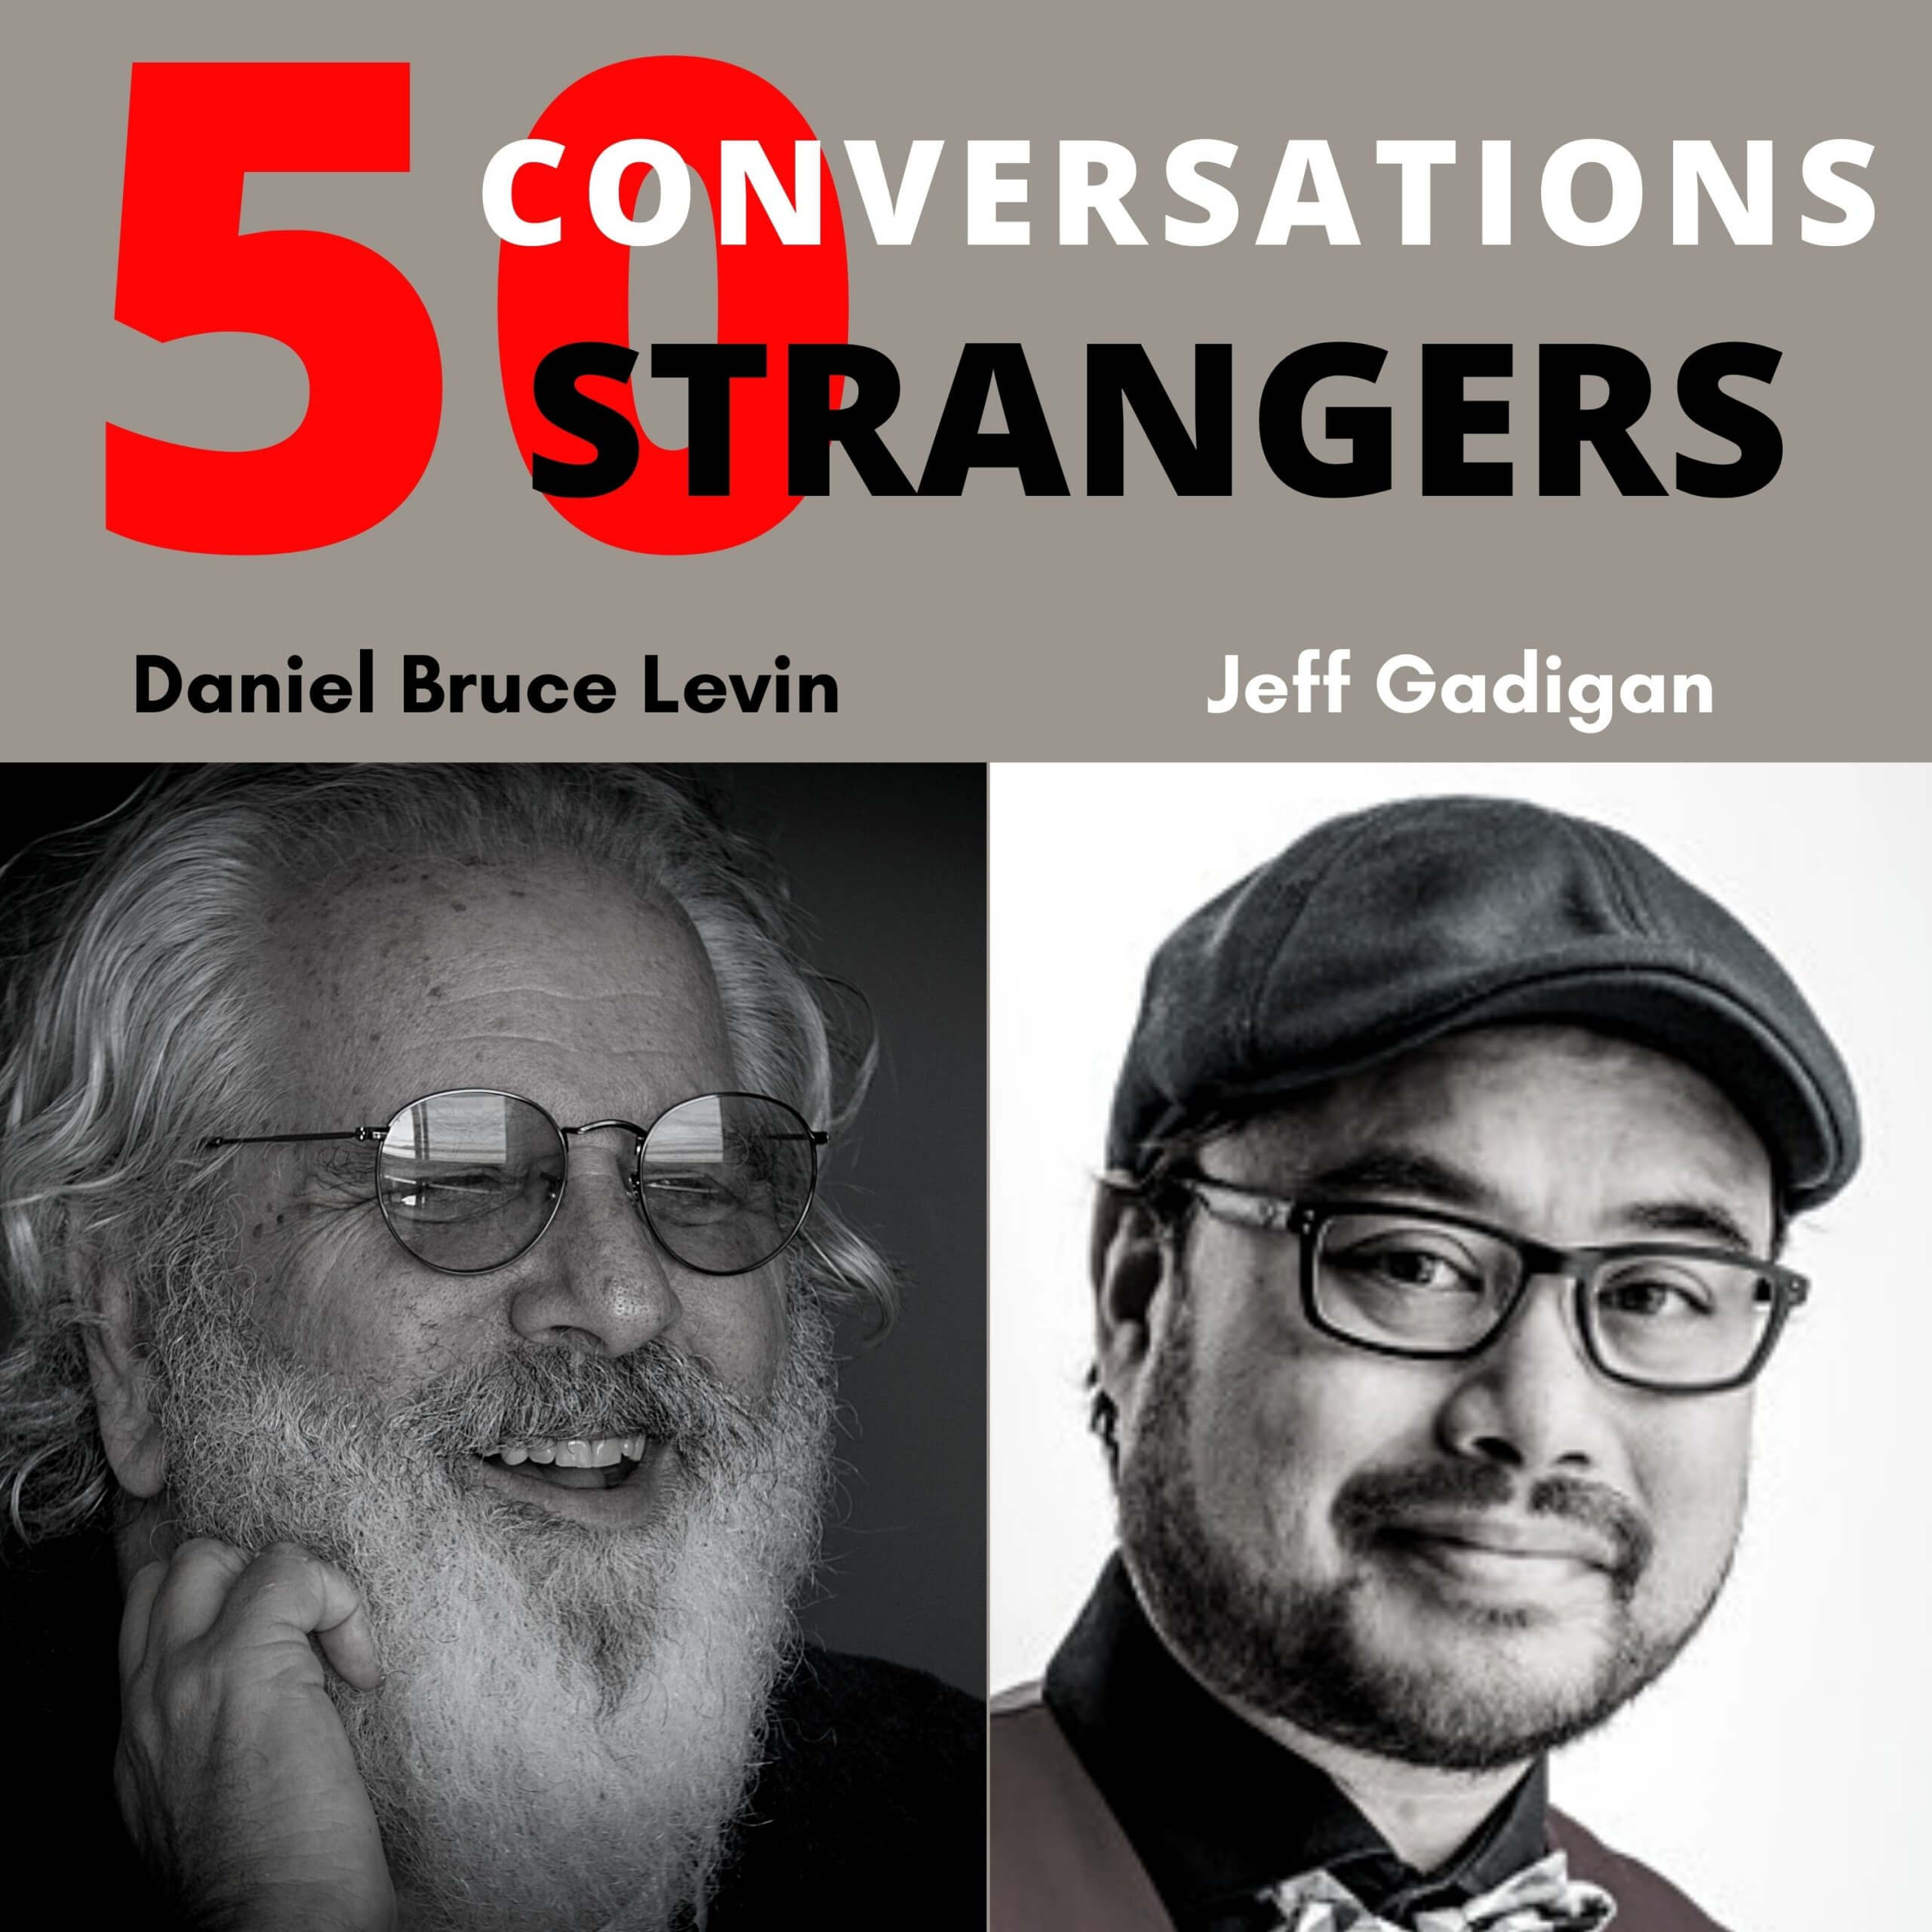 50 Conversations with 50 Strangers with Jeff Gadigan